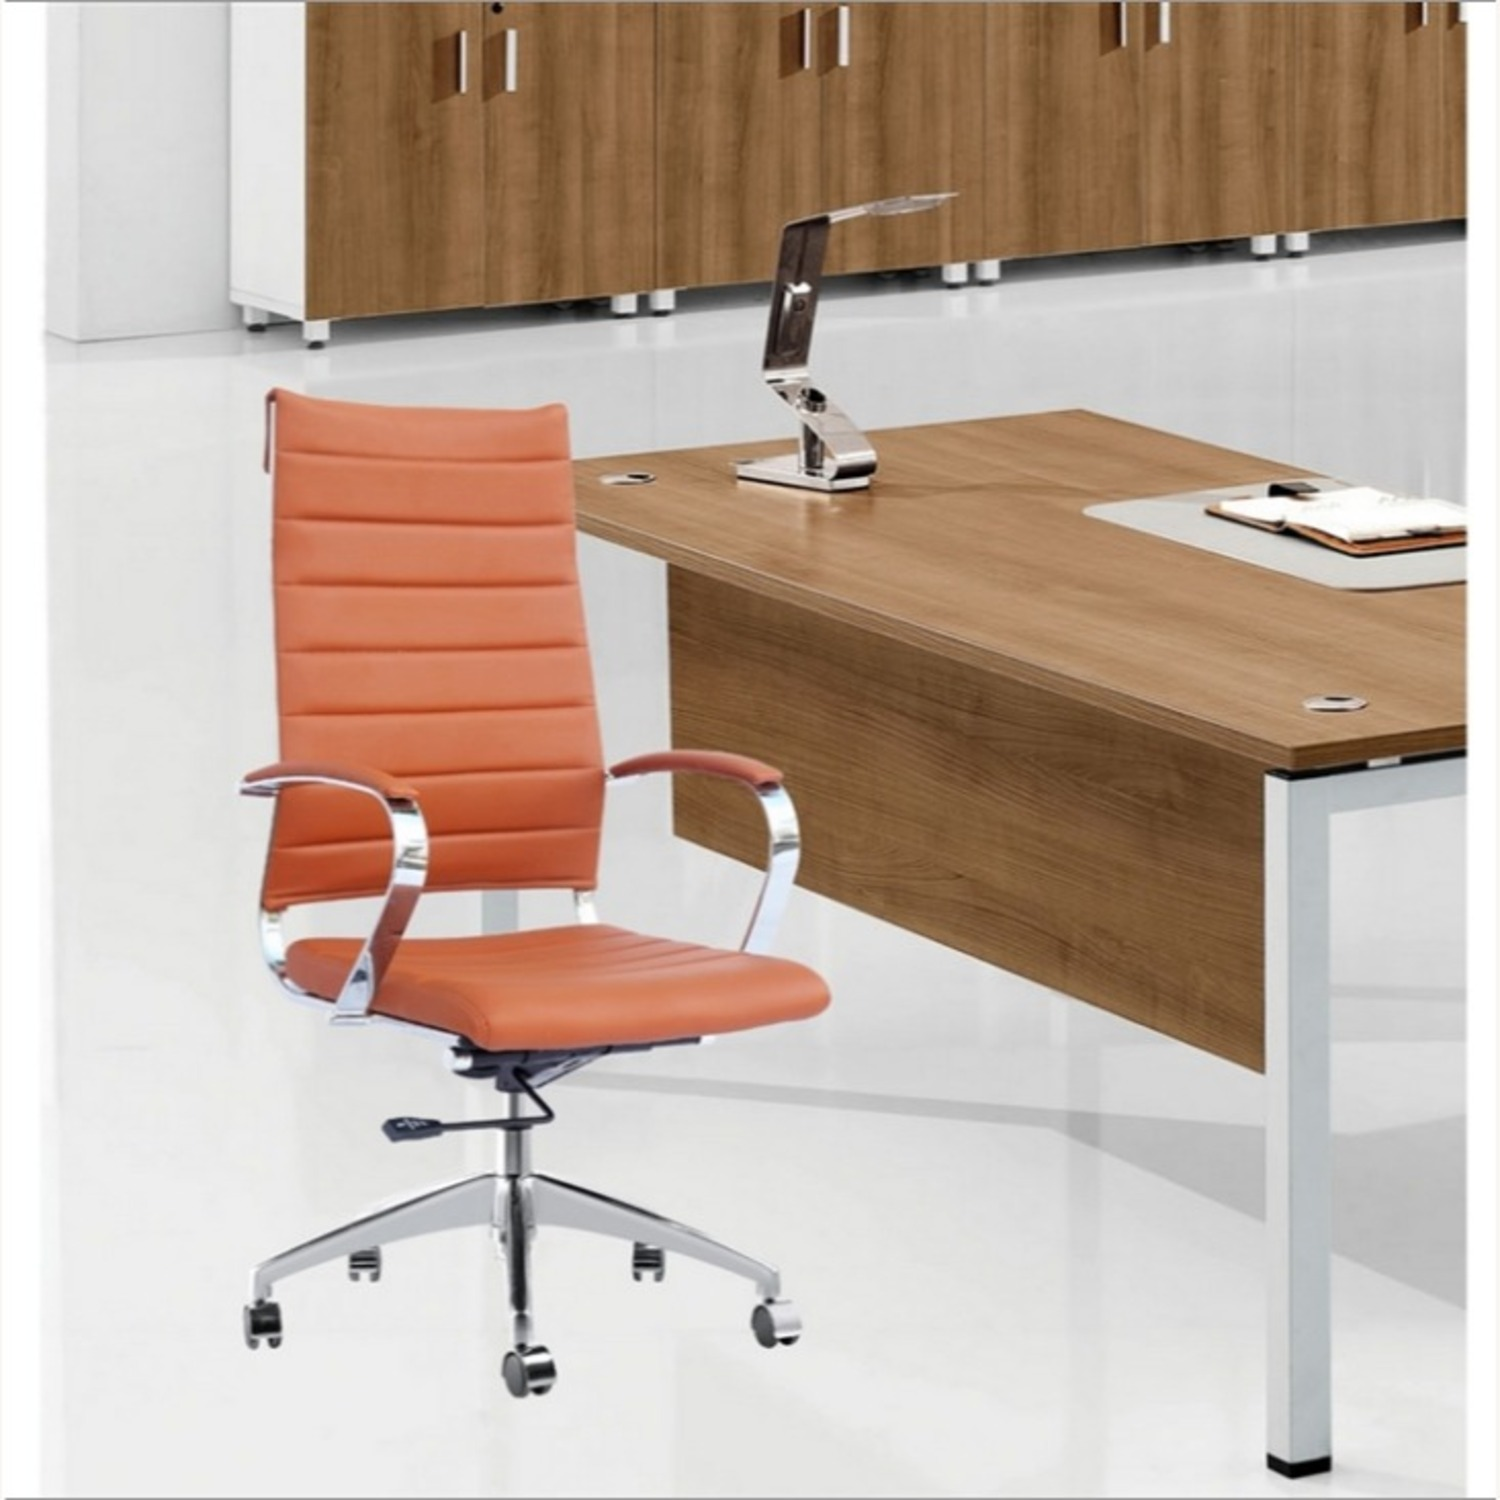 Office Chair W/ High Back Seat In Light Brown - image-2